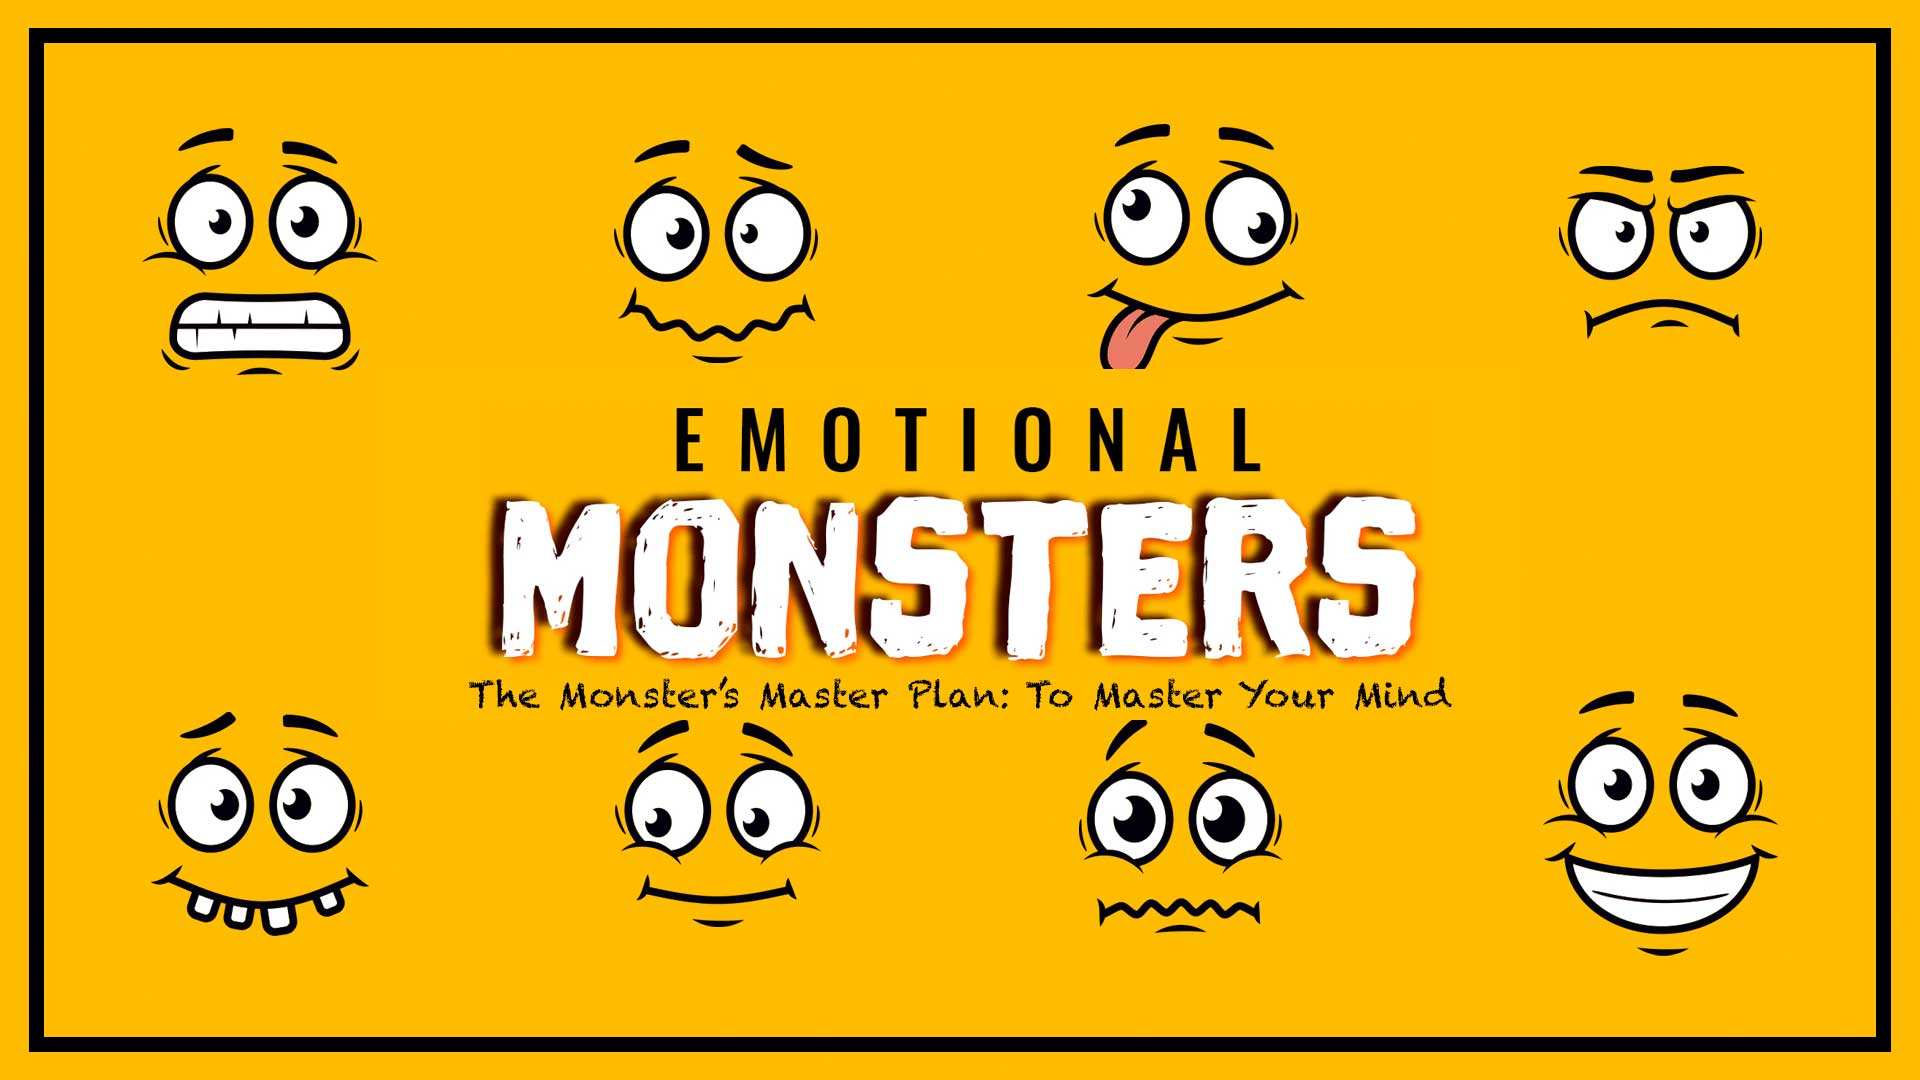 Emotional Monsters: The Monster's Master Plan to Master Your Mind